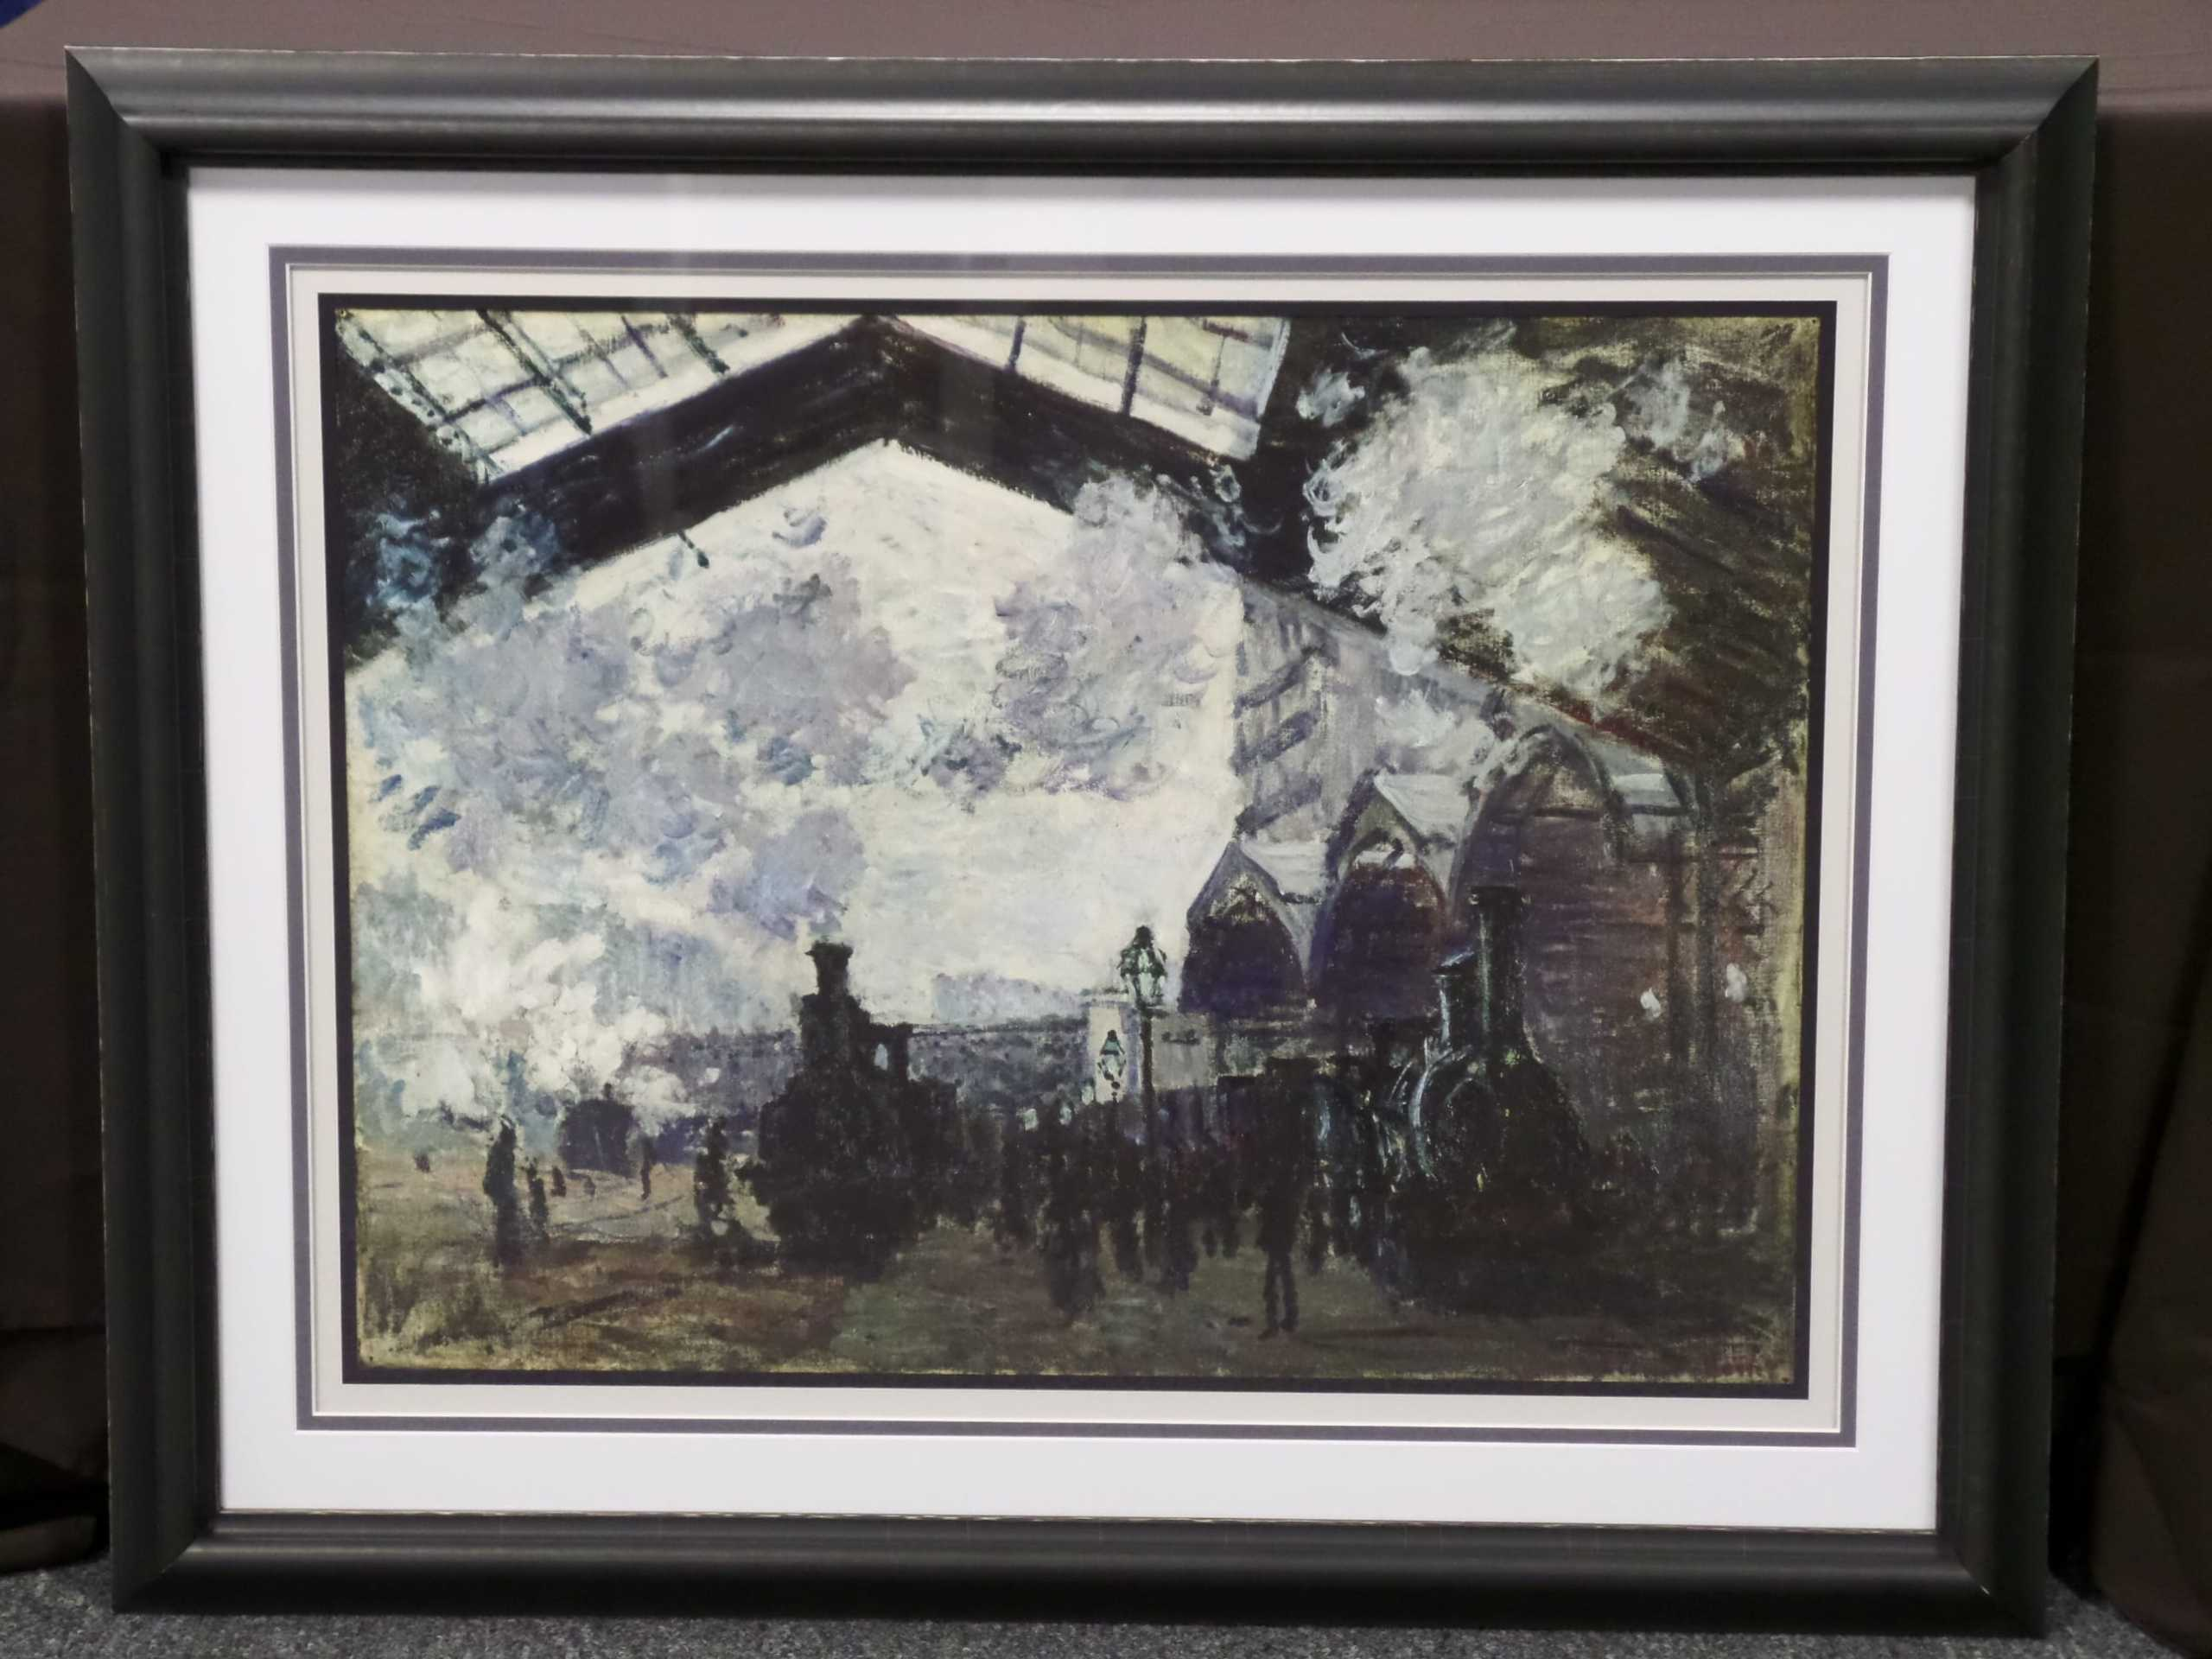 CUSTOM FRAMED MONET PRINT  Donated by: TIMELESS FRAMES  Valued at: $1,844 Buy It Now: $150